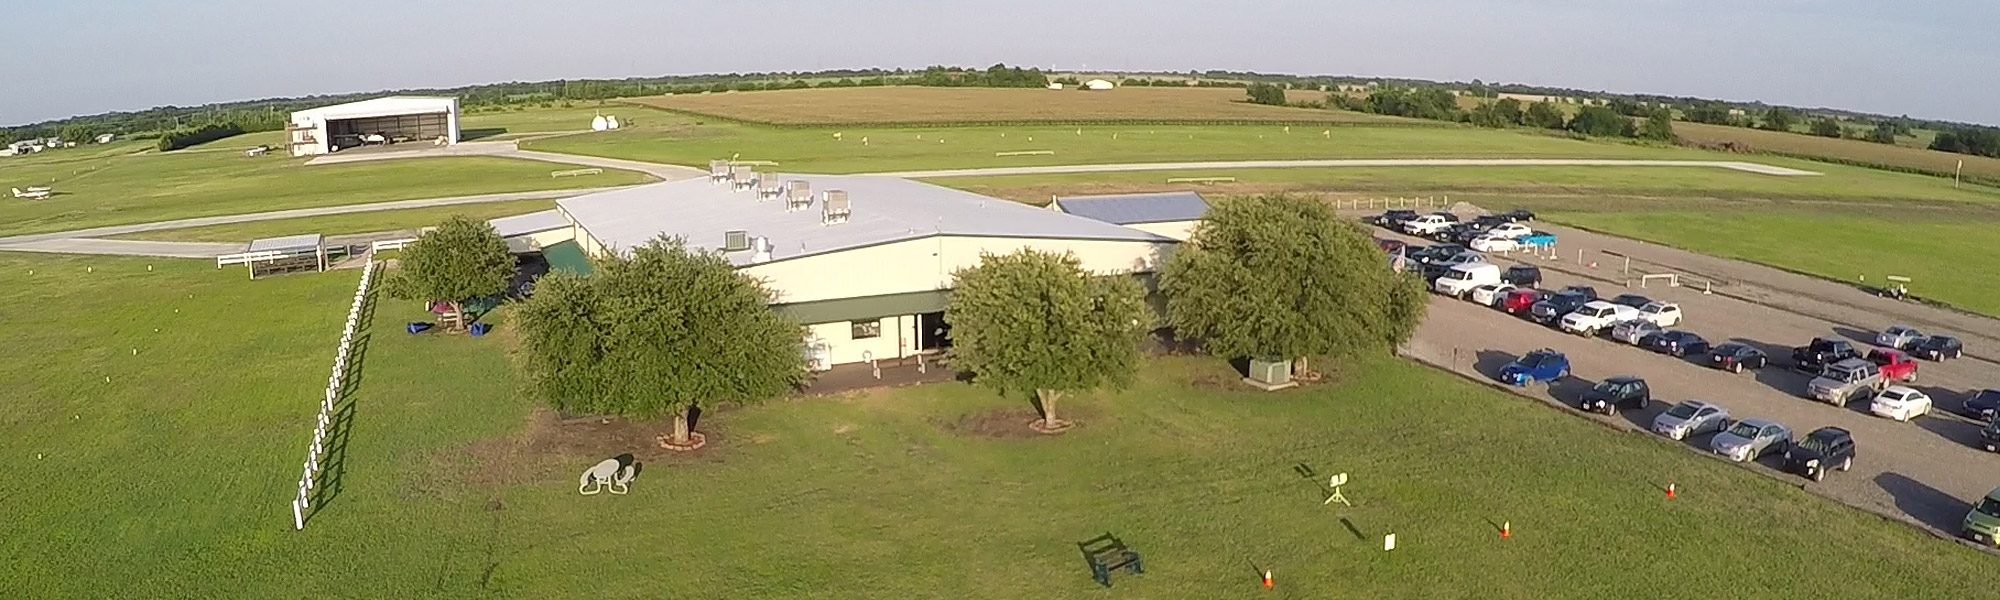 Skydive Spaceland Dallas aerial view